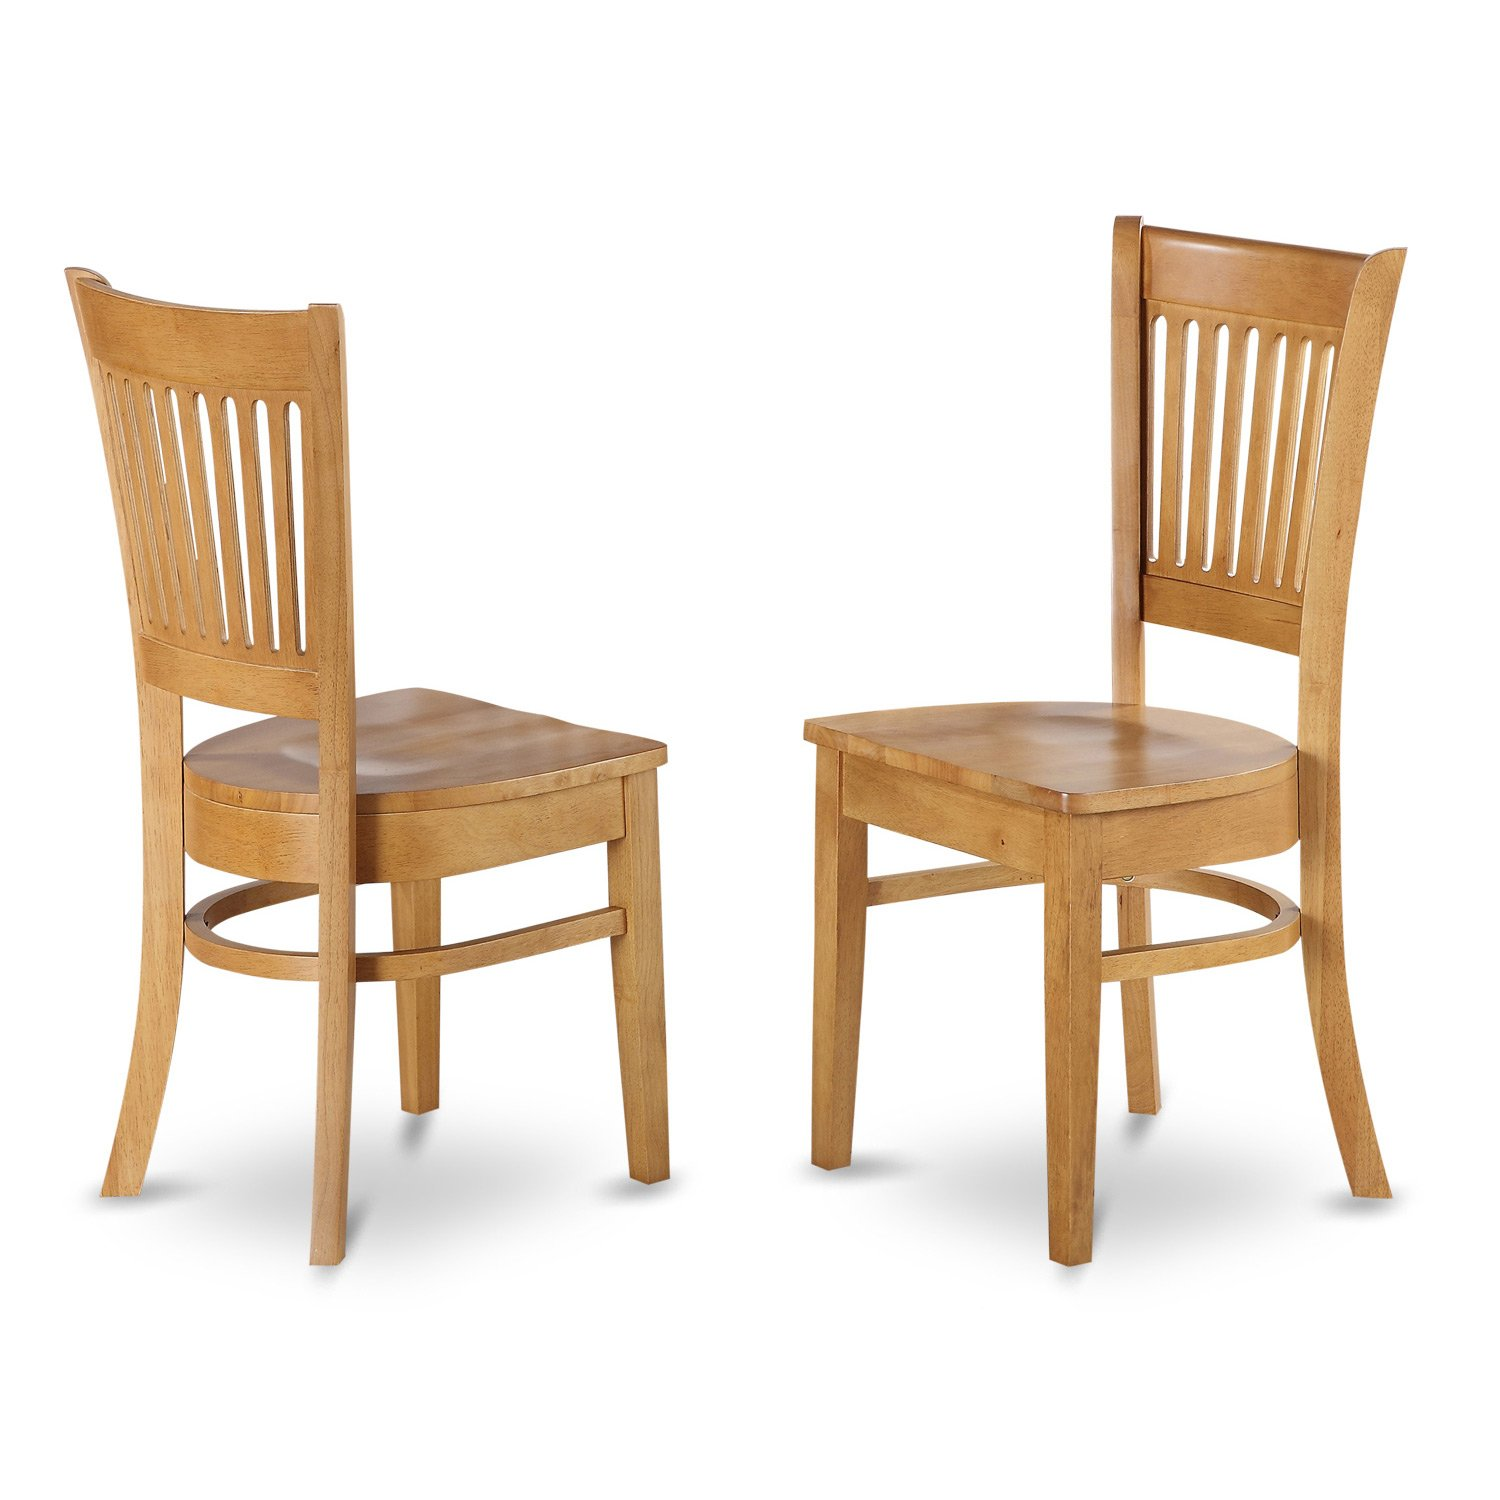 East West Furniture VAC-OAK-W Wood Seat Kitchen/Dining Chairs, Oak Finish, Set of 2 by East West Furniture (Image #1)